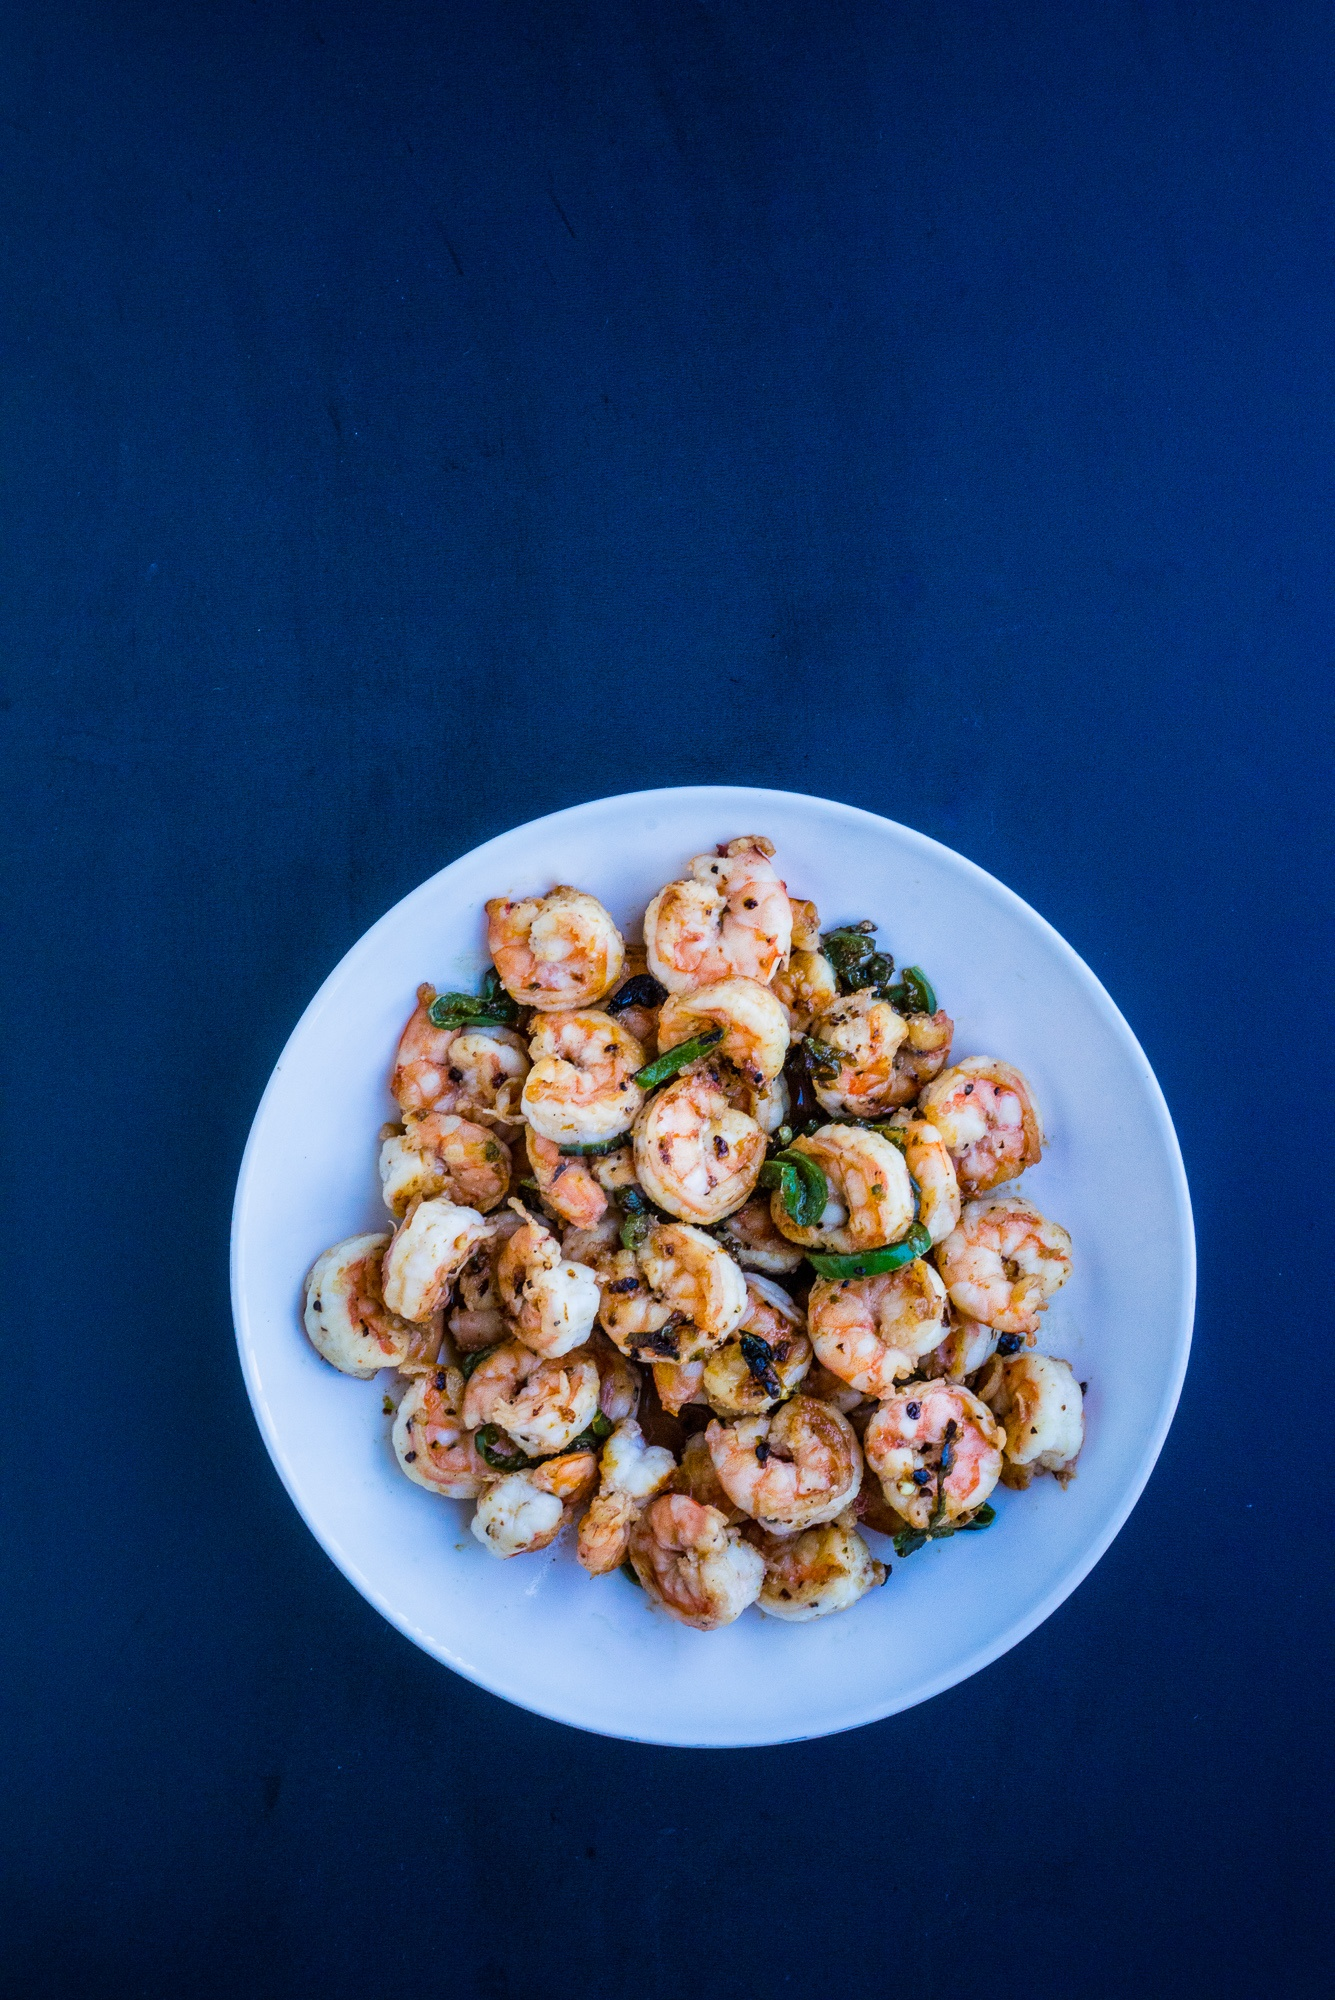 Spicy Sweet Shrimp Stir-Fry